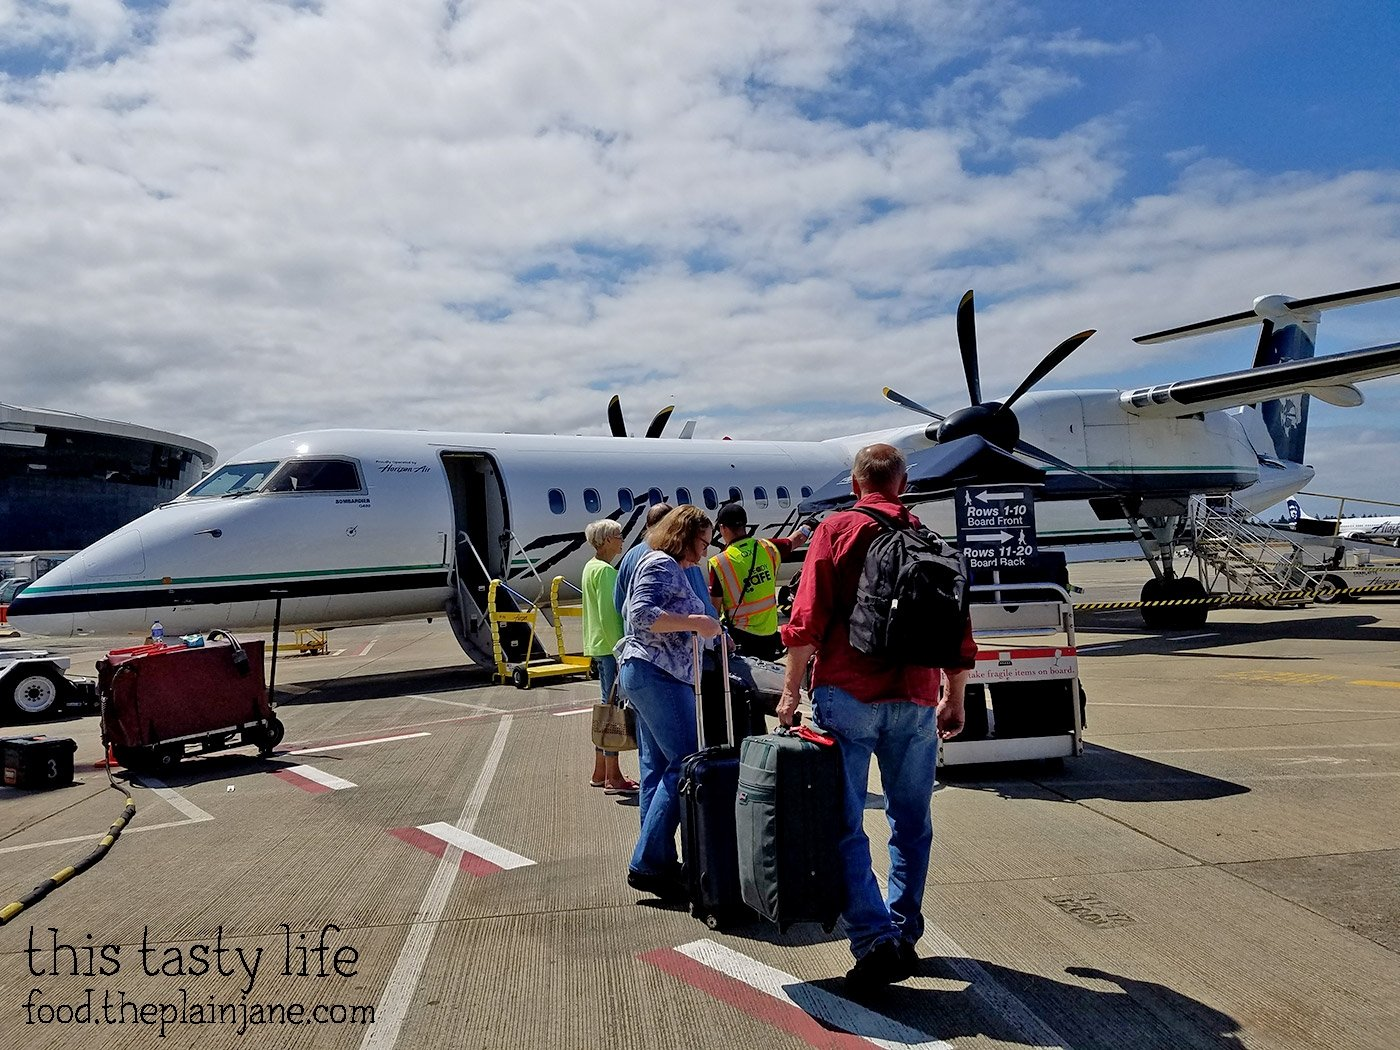 We had to ride on a small propeller plane for part of our journey to Spokane! It was cool, too, since they boarded from the front AND the back of the plane!